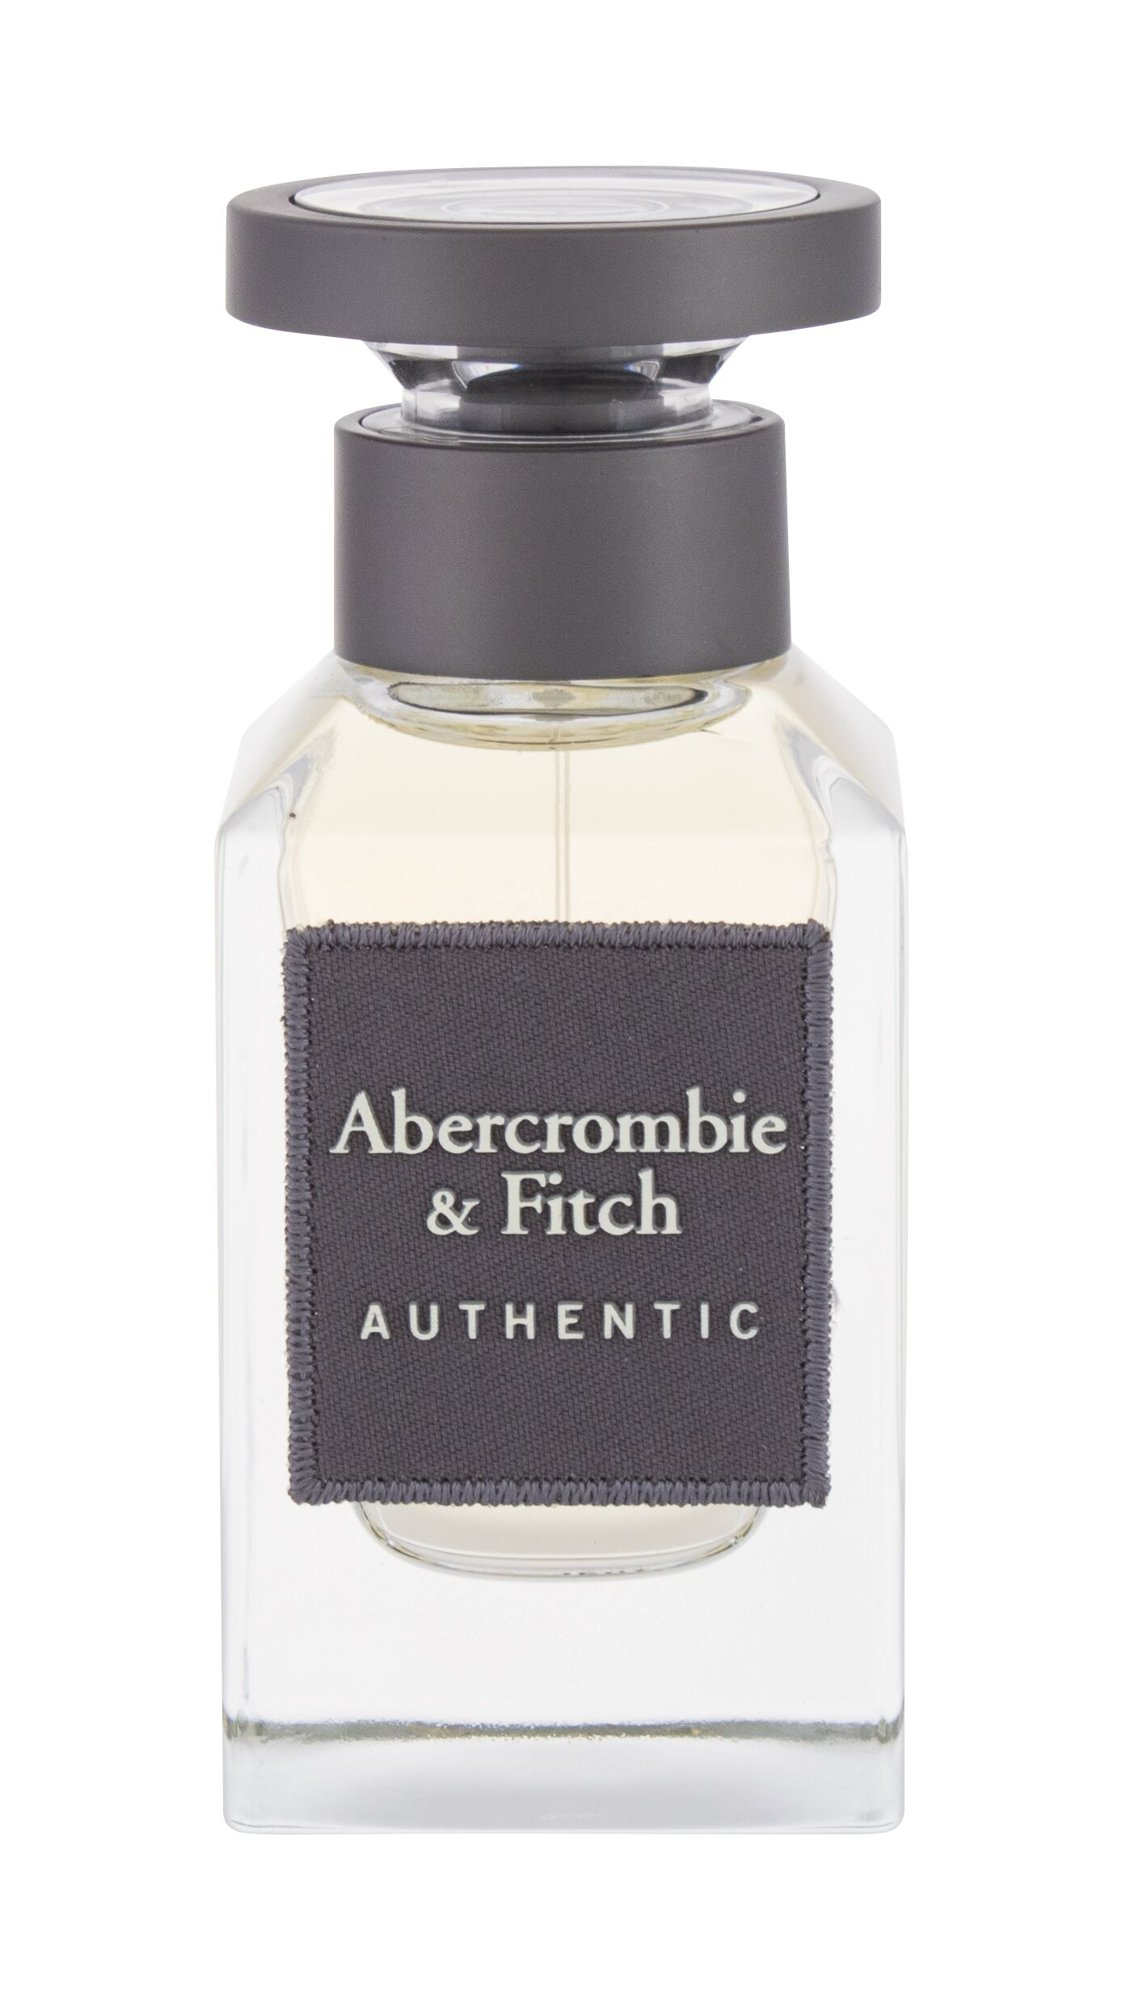 Abercrombie & Fitch Authentic (M)